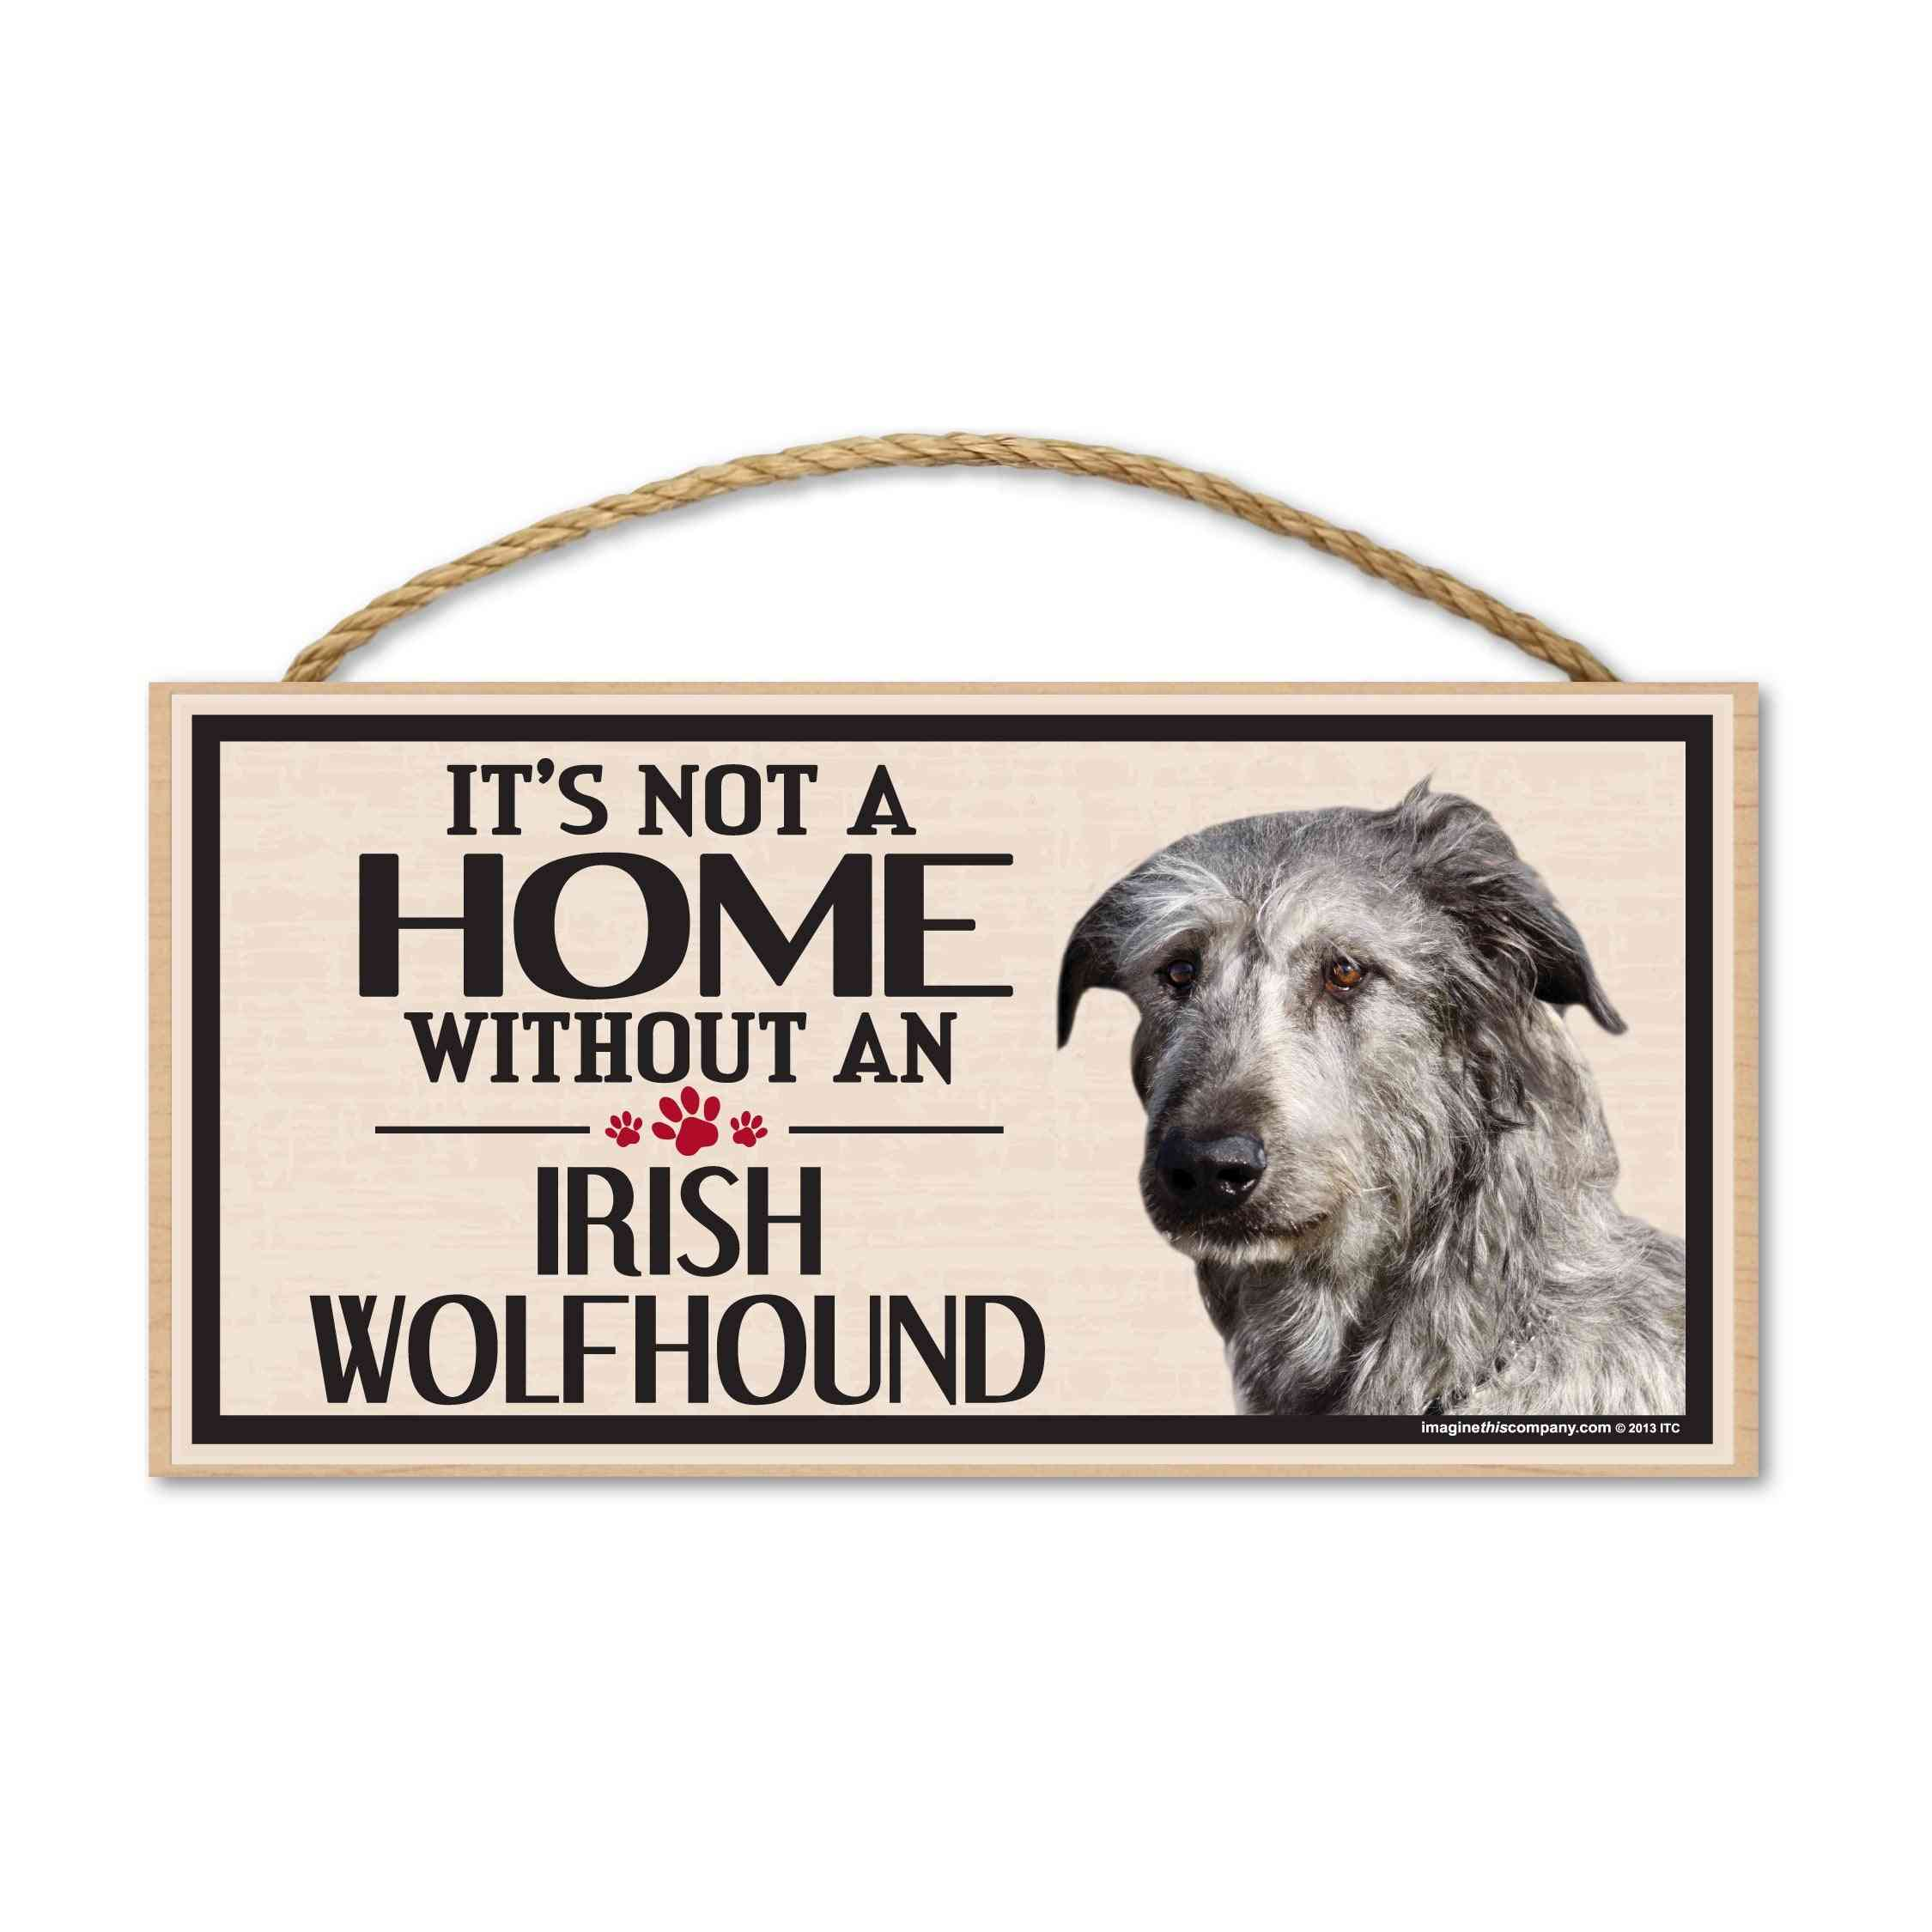 Sign, Wood, It's Not A Home Without An Irish Wolfhound, 10